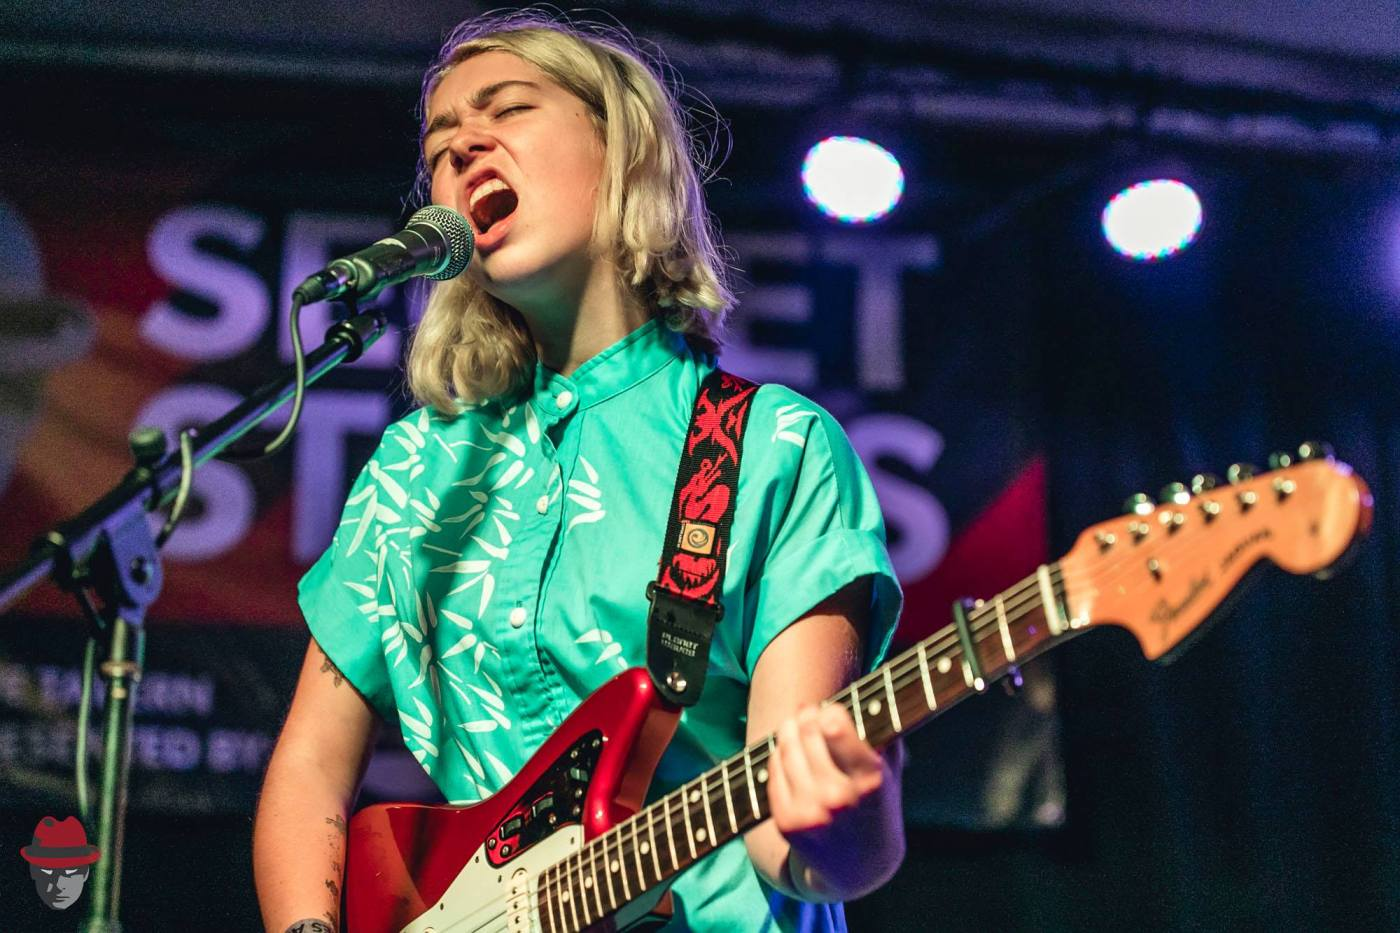 """Snail Mail performed at Secret Stages in 2017, before the release of her EP """"Lush."""" Photo by Secret Playground Photography for Secret Stages"""